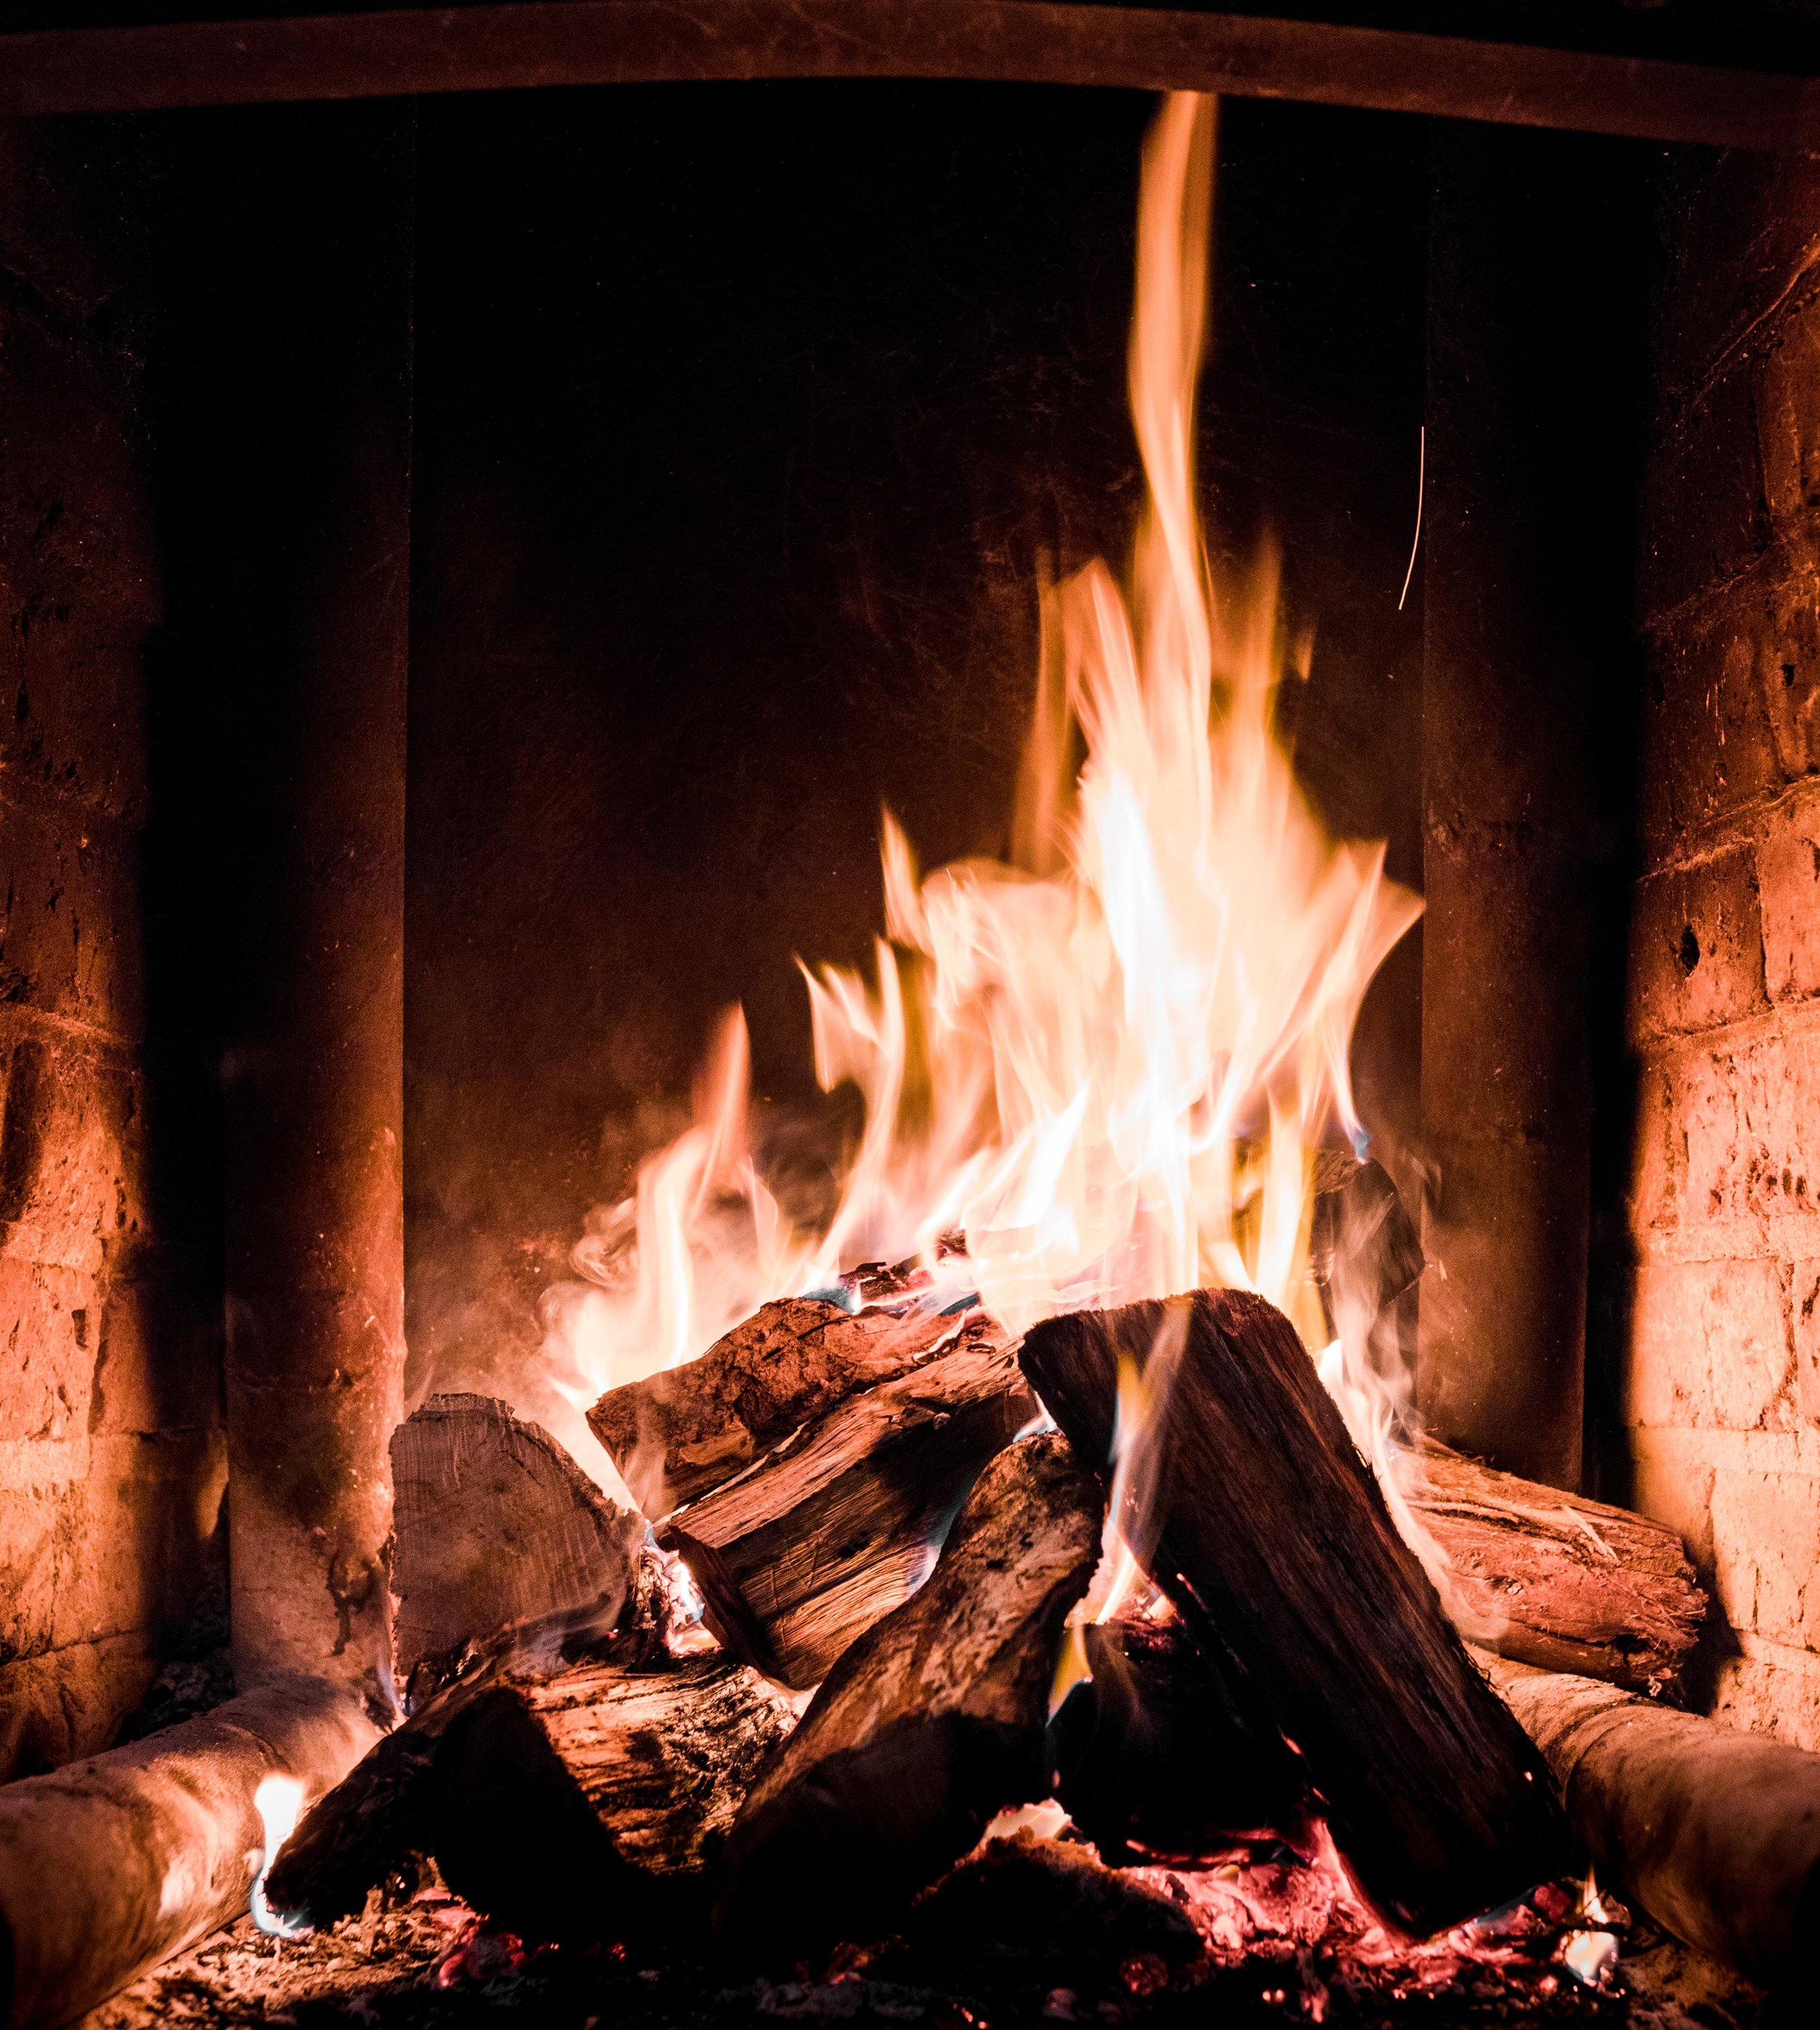 A Warm Fire Before Bed.